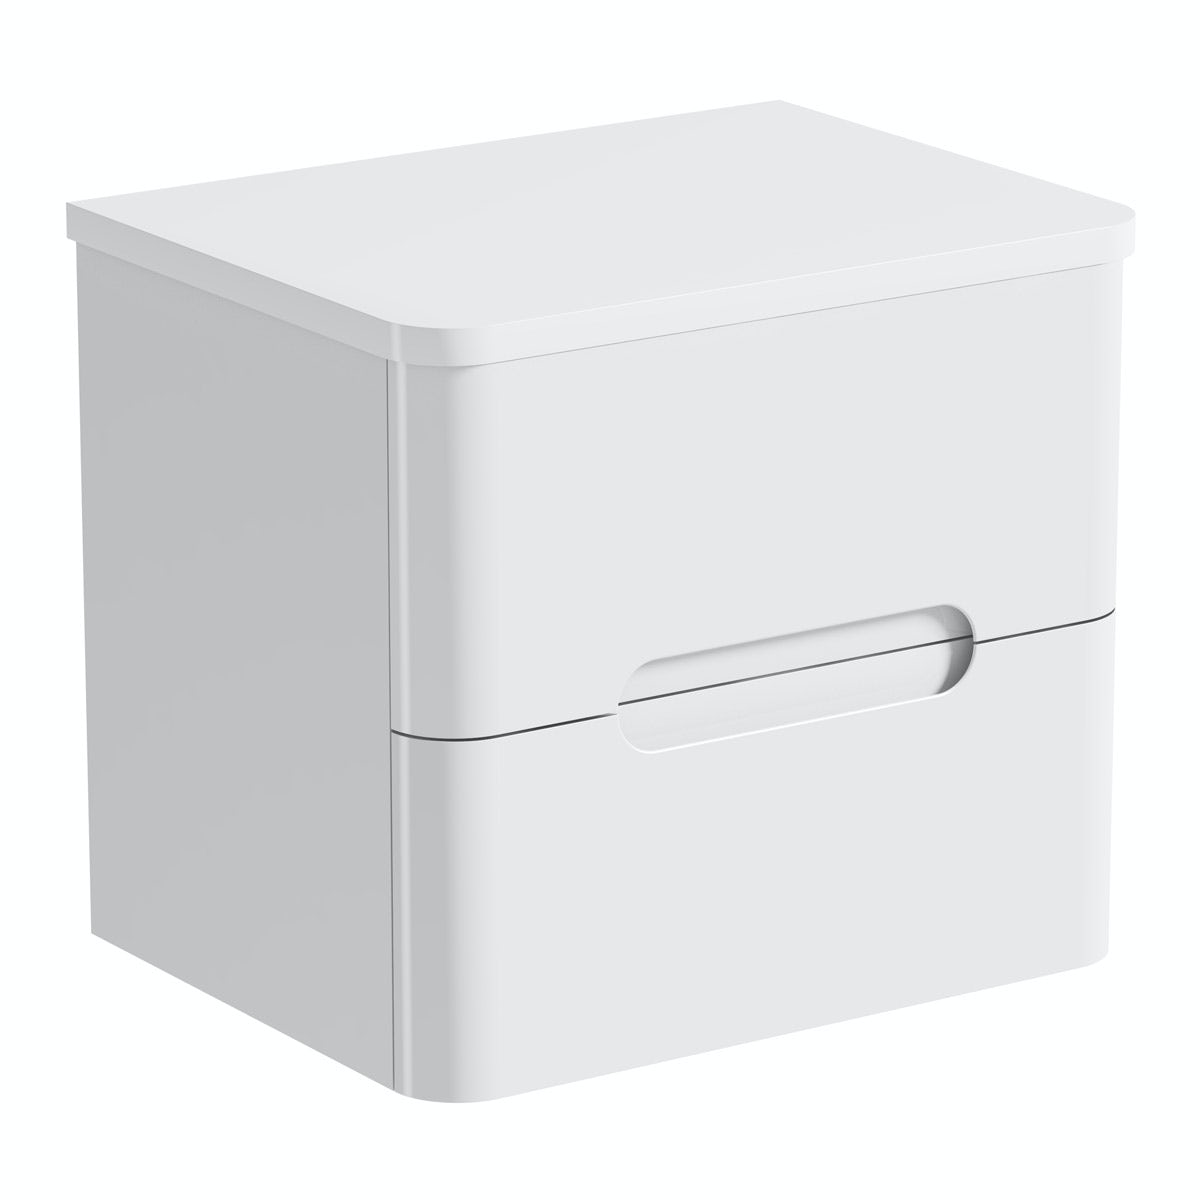 Mode Ellis white wall hung vanity drawer unit and countertop 600mm